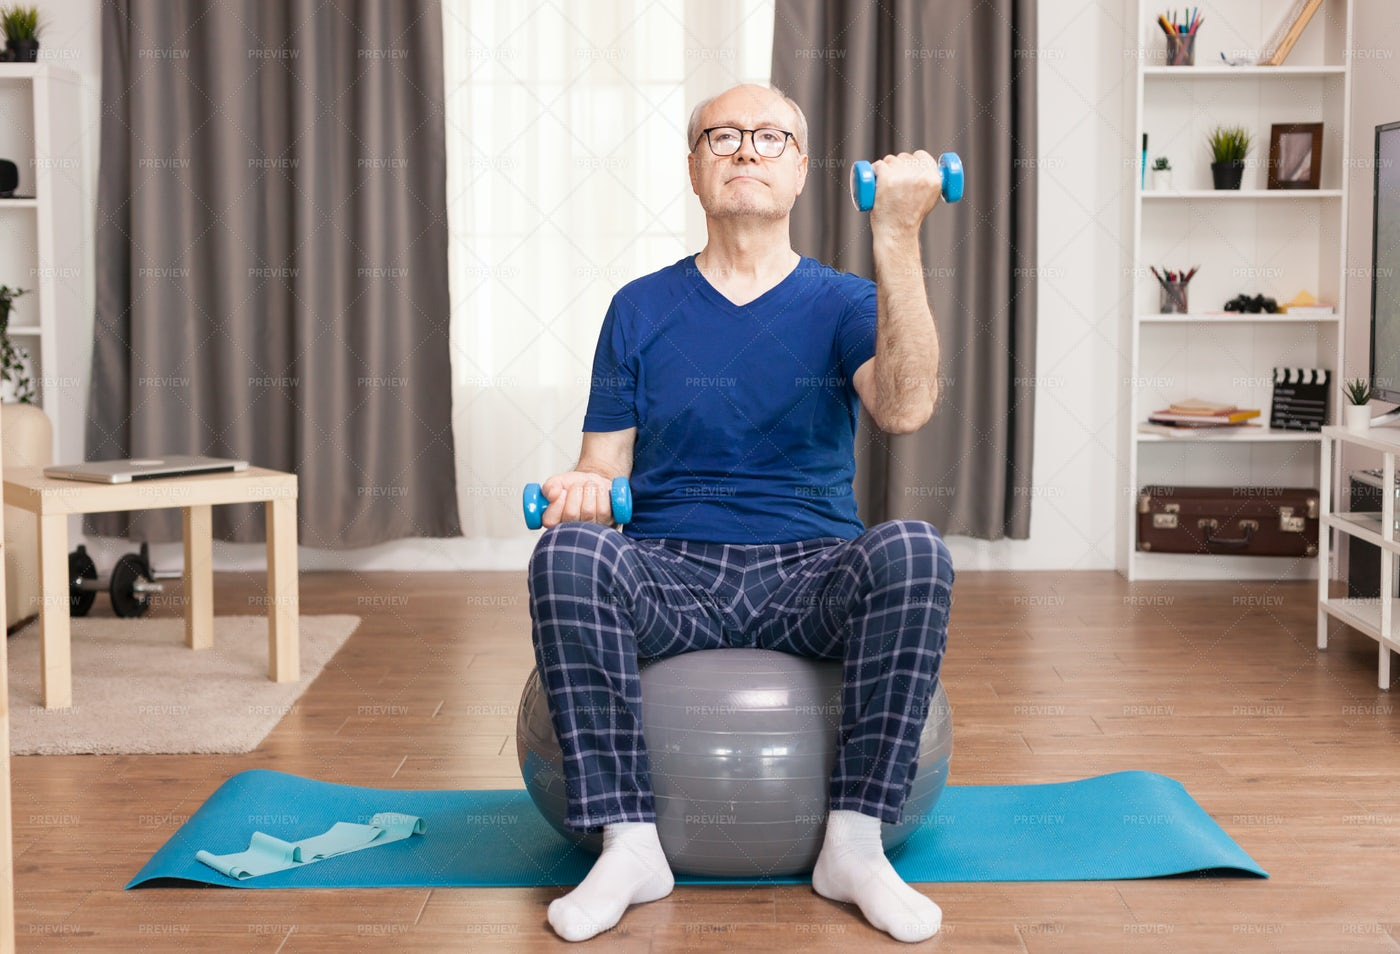 Dumbbells Curls At Home: Stock Photos